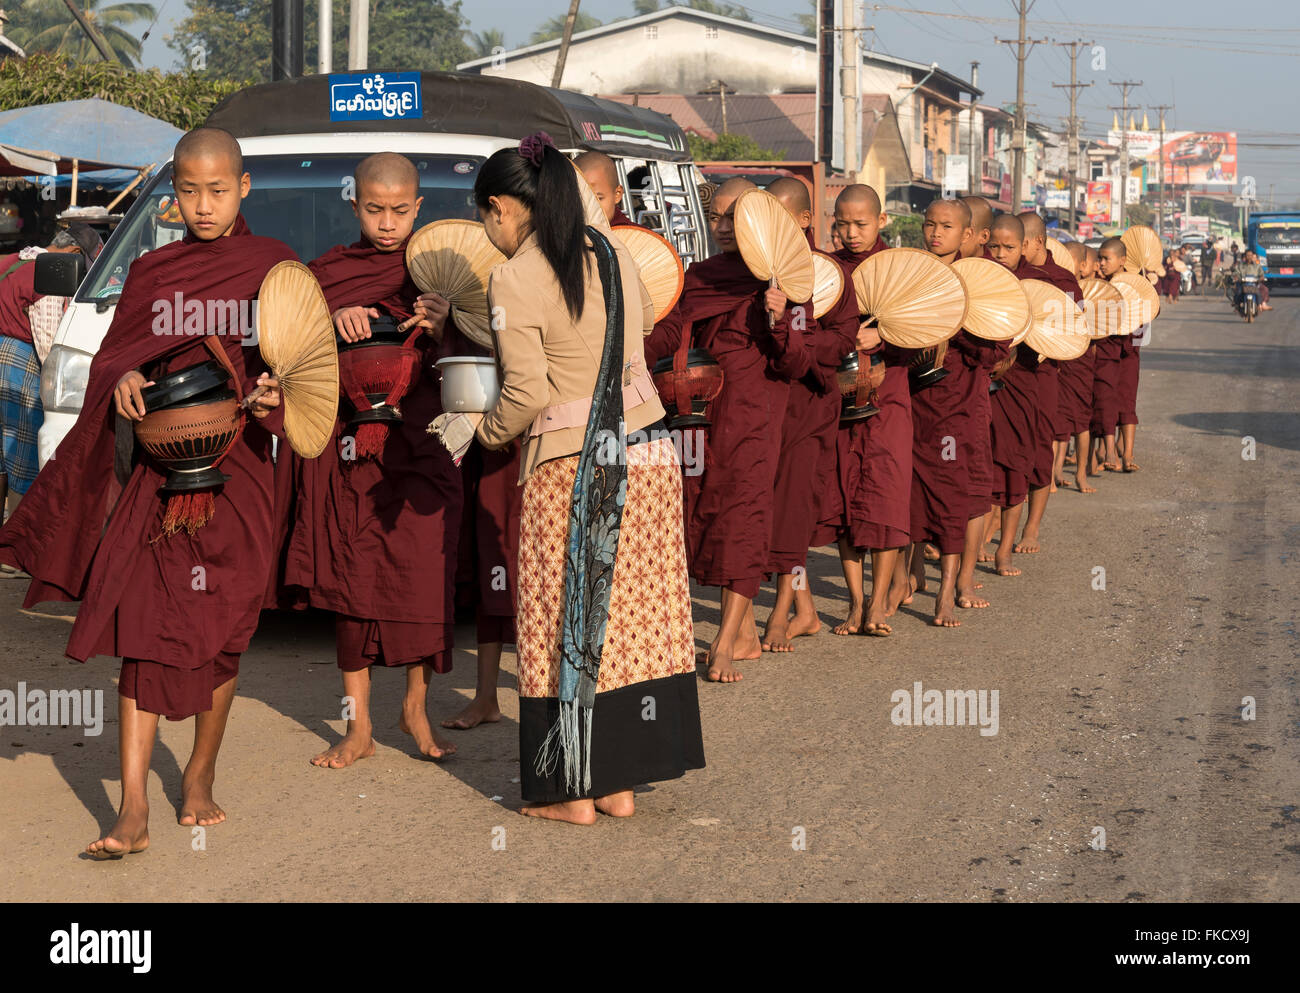 Monks on morning alms round in the streets of Mawlamyaing (Mawlamyine), Burma (Myanmar) Stock Photo